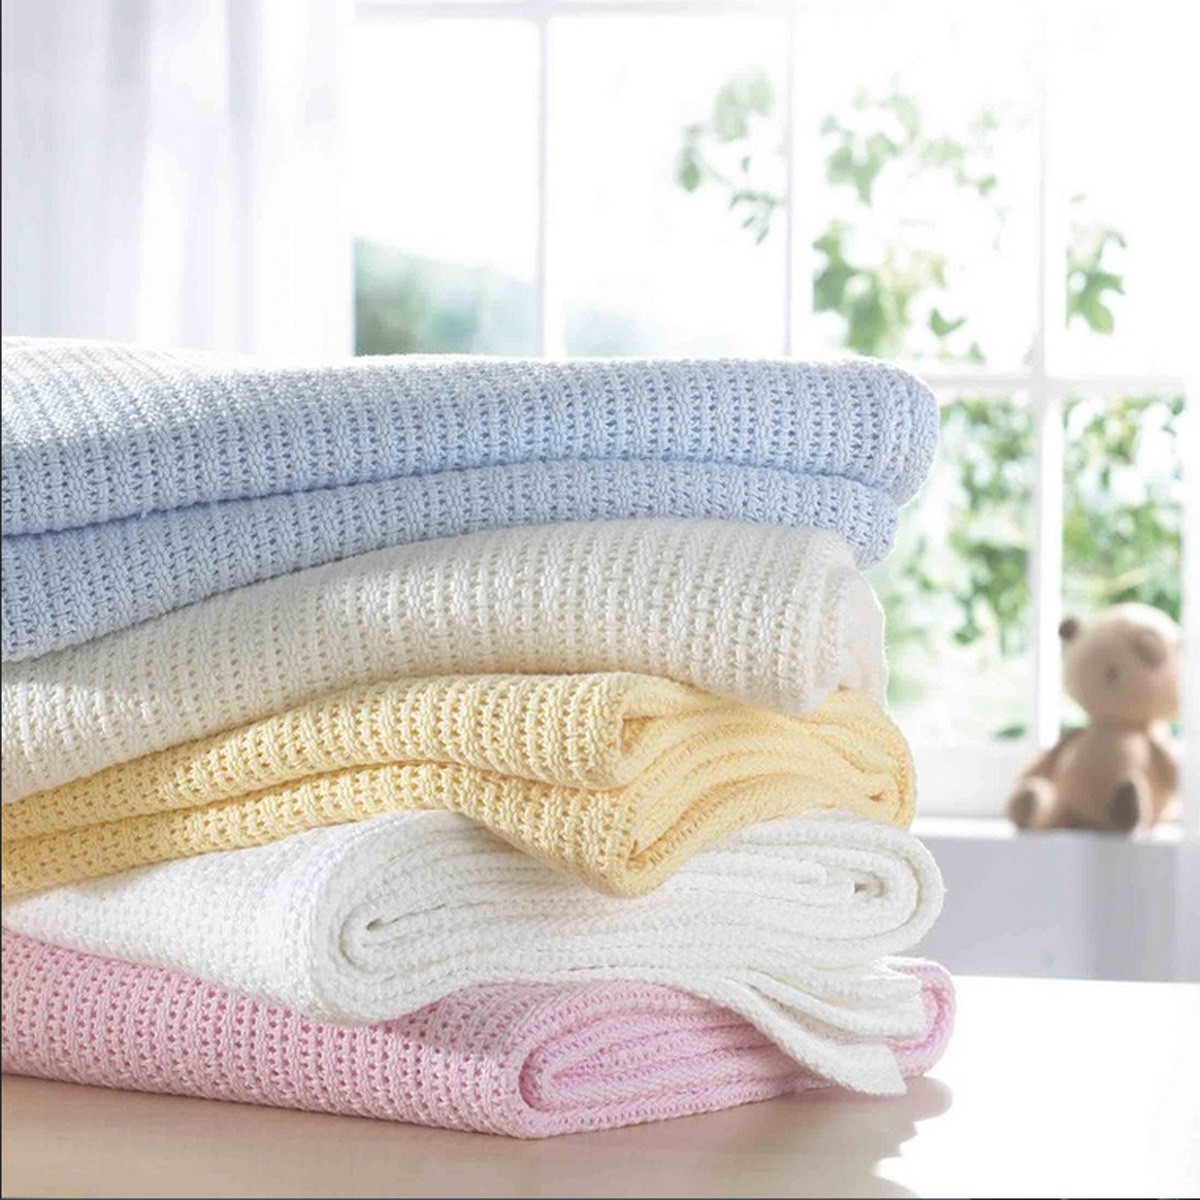 Cellular Cot Blankets 100x75cm Cotton Baby Infant Kids Soft Cellular Blanket Basket Crib Pram Cot Bedding Sleeping Bath Shower Towel